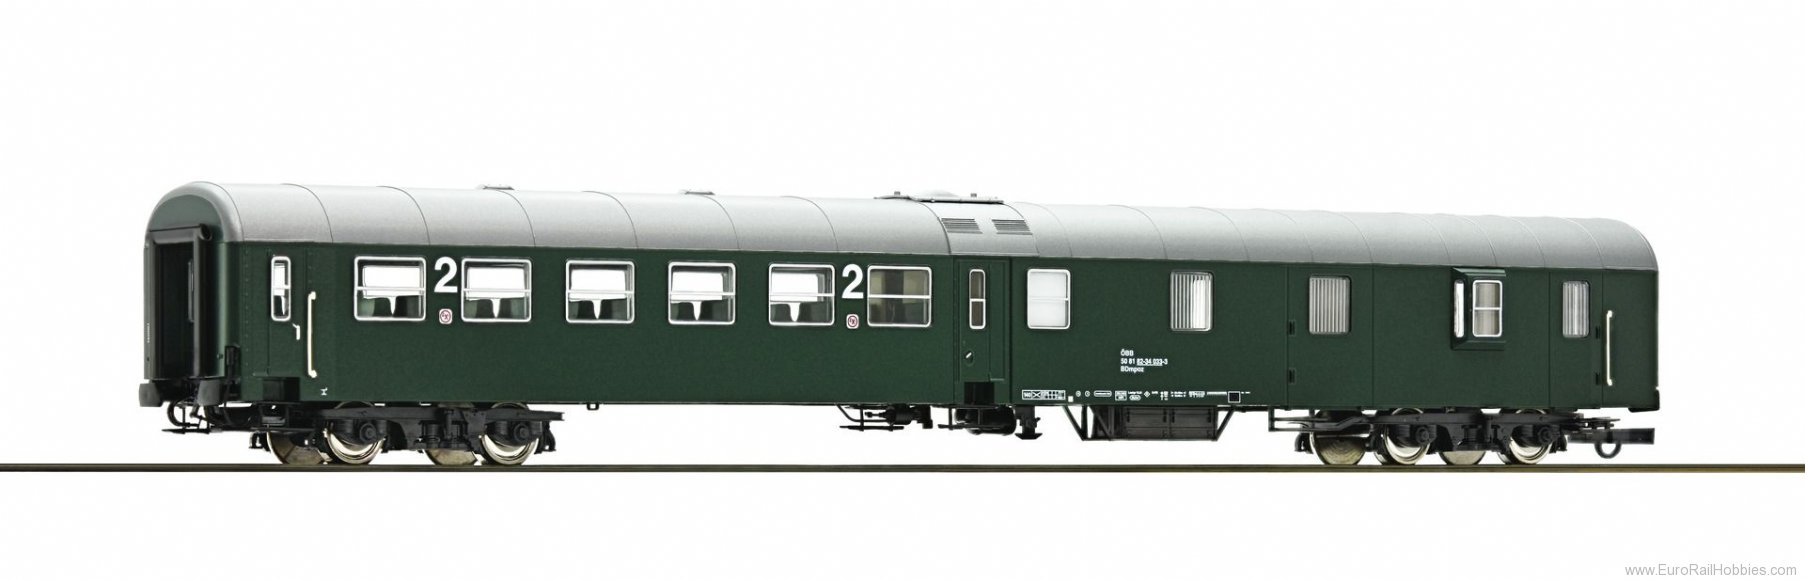 Roco 64670 2nd class center entry coach with baggage com